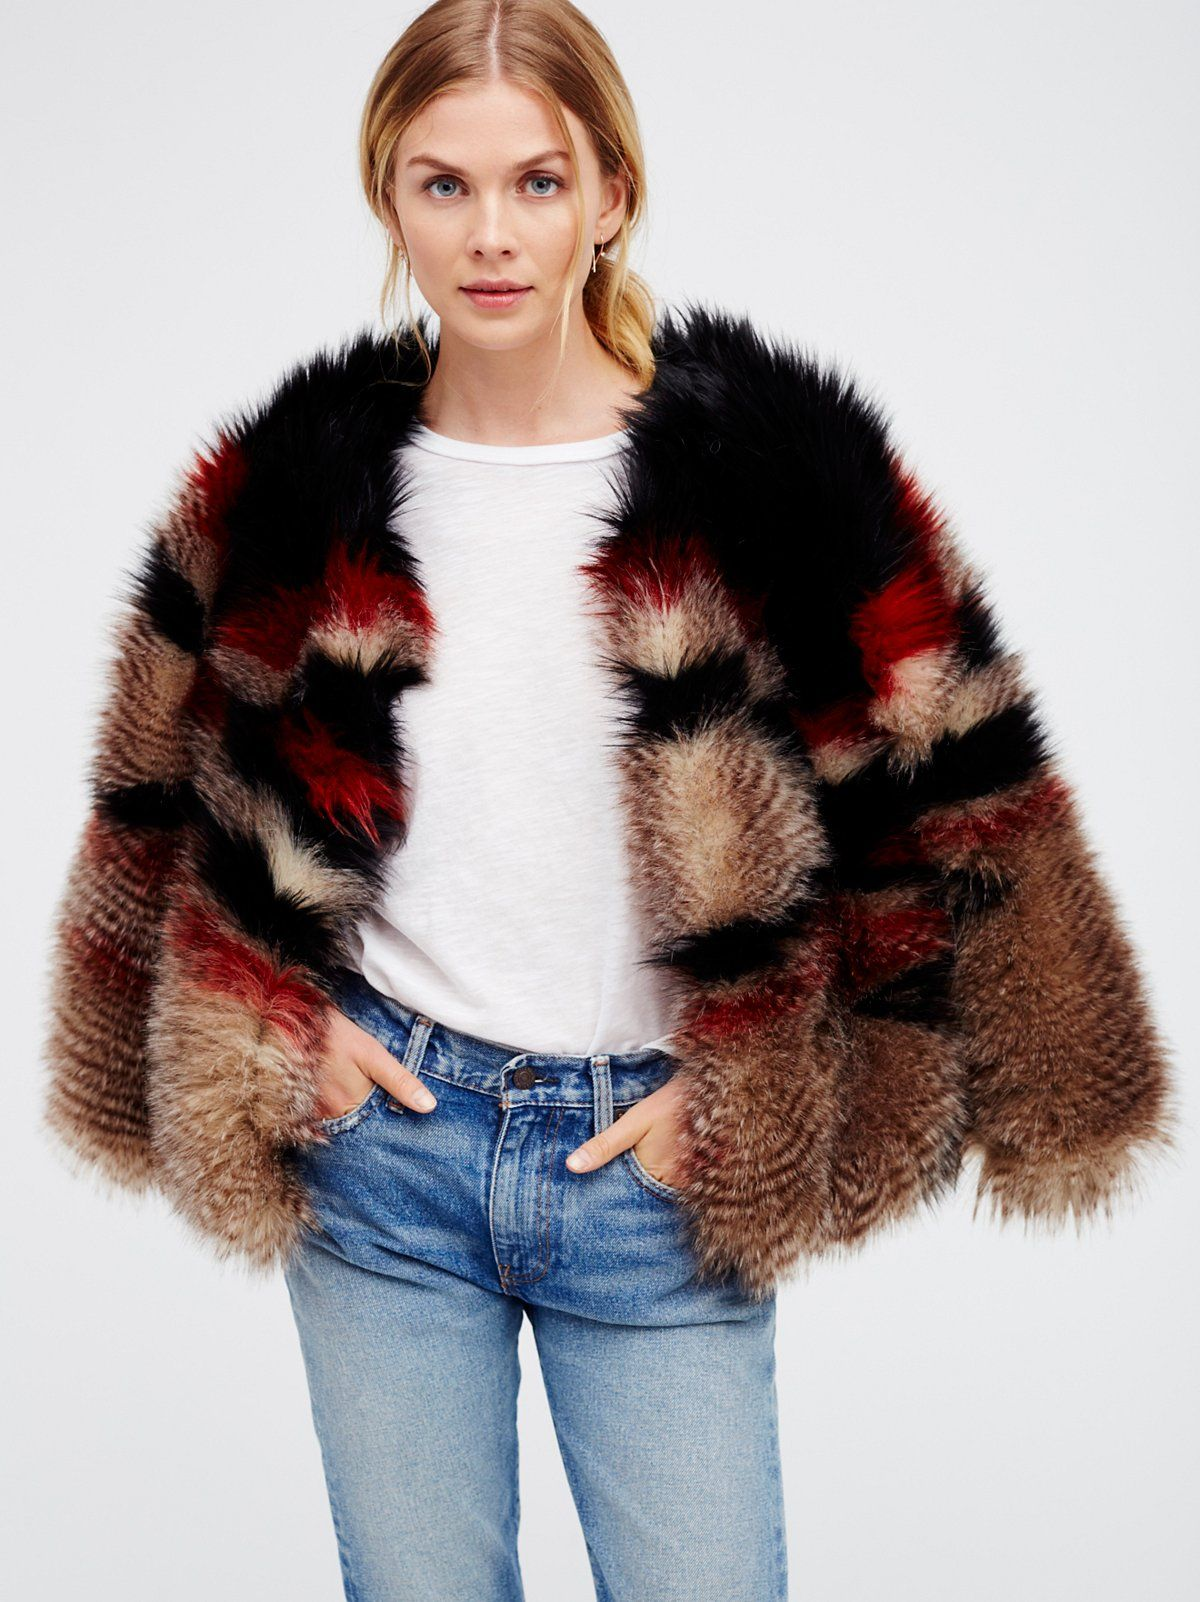 Scarlet Faux Fur Jacket | Cozy up in this gorgeous heavyweight ...